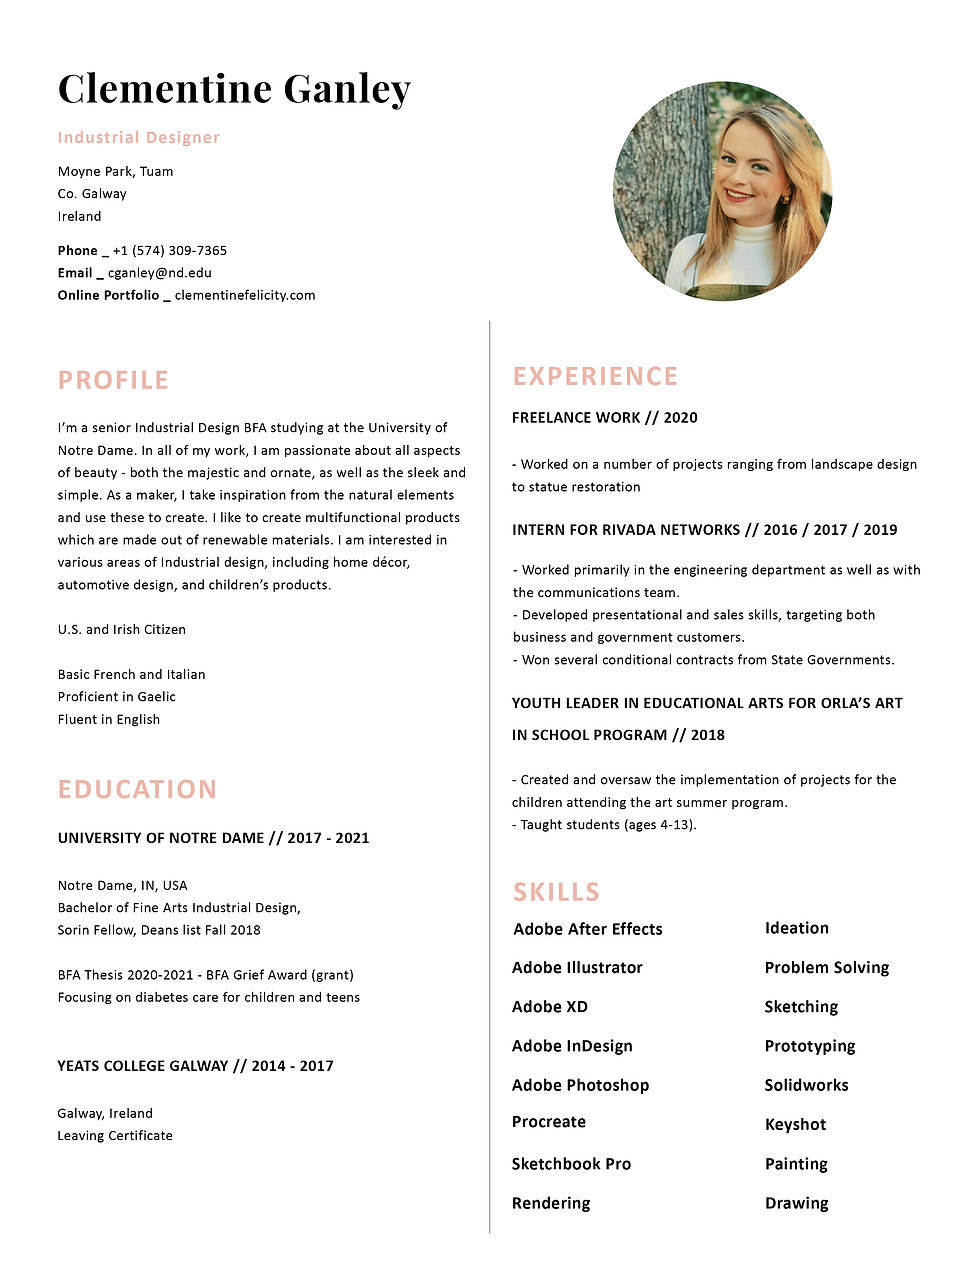 Clementine Ganley Resume 2020 with pic.j